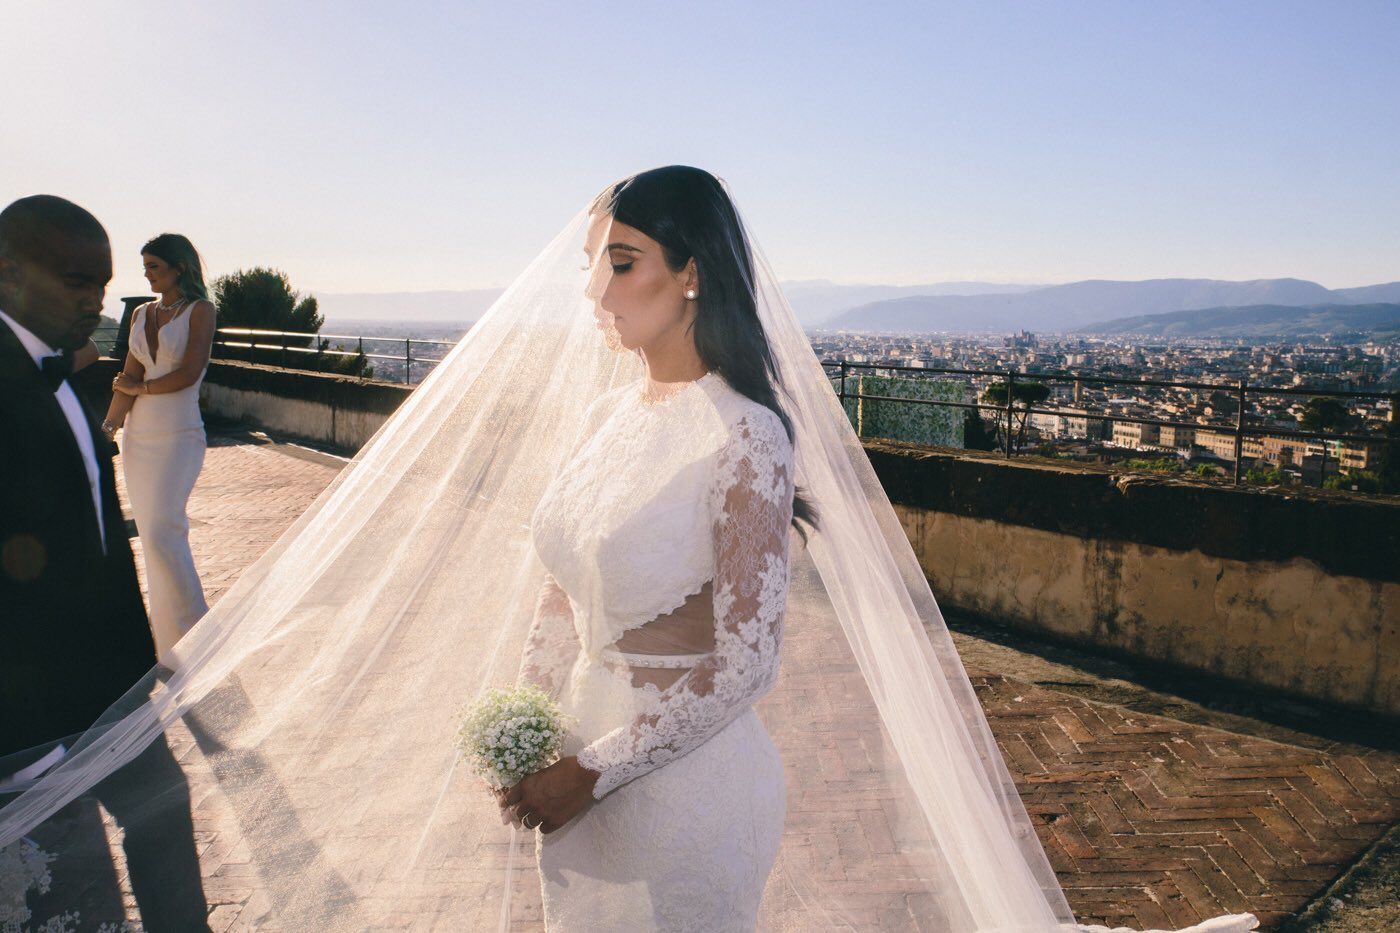 Kim Kardashian wedding photos  Kim kardashian wedding, Kim